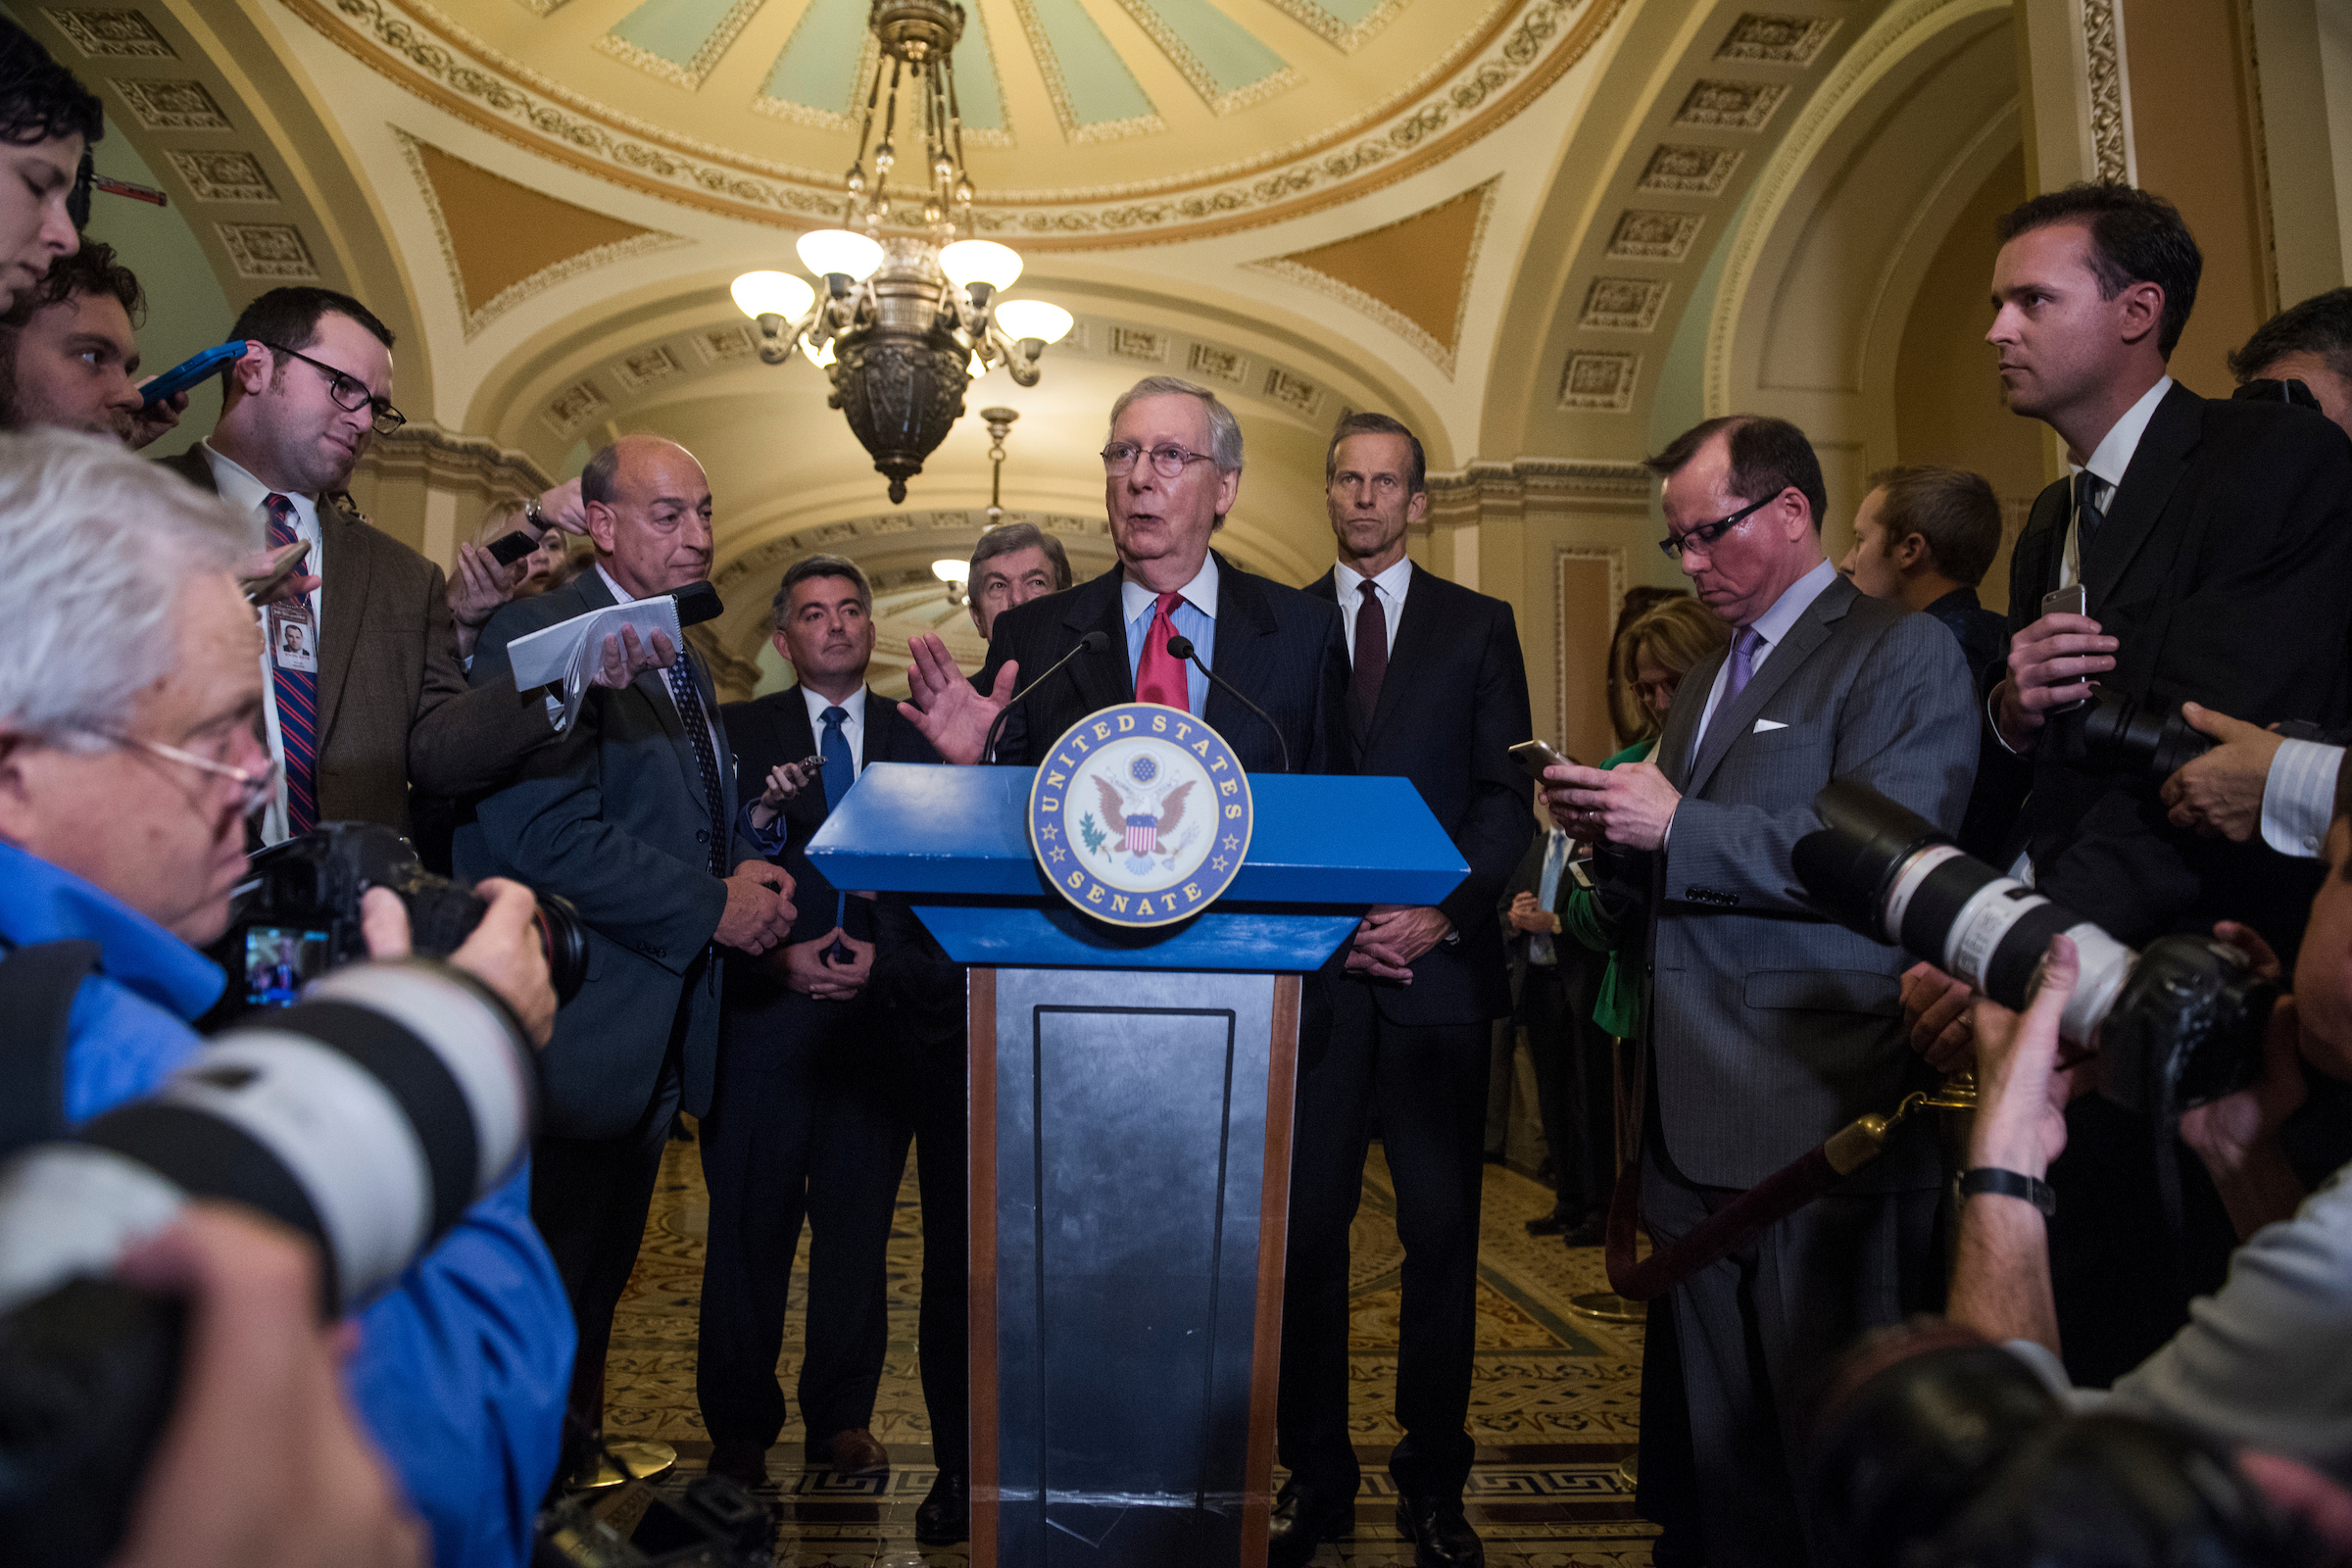 UNITED STATES - OCTOBER 24: Senate Majority Leader Mitch McConnell, R-Ky., conducts news conference in the Capitol after President Donald Trump visited the Republican Senate Policy luncheon on October 24, 2017. From left, Sens. Cory Gardner, R-Colo., Roy Blunt, R-Mo., and John Thune, R-S.D., also appear. (Photo By Tom Williams/CQ Roll Call)